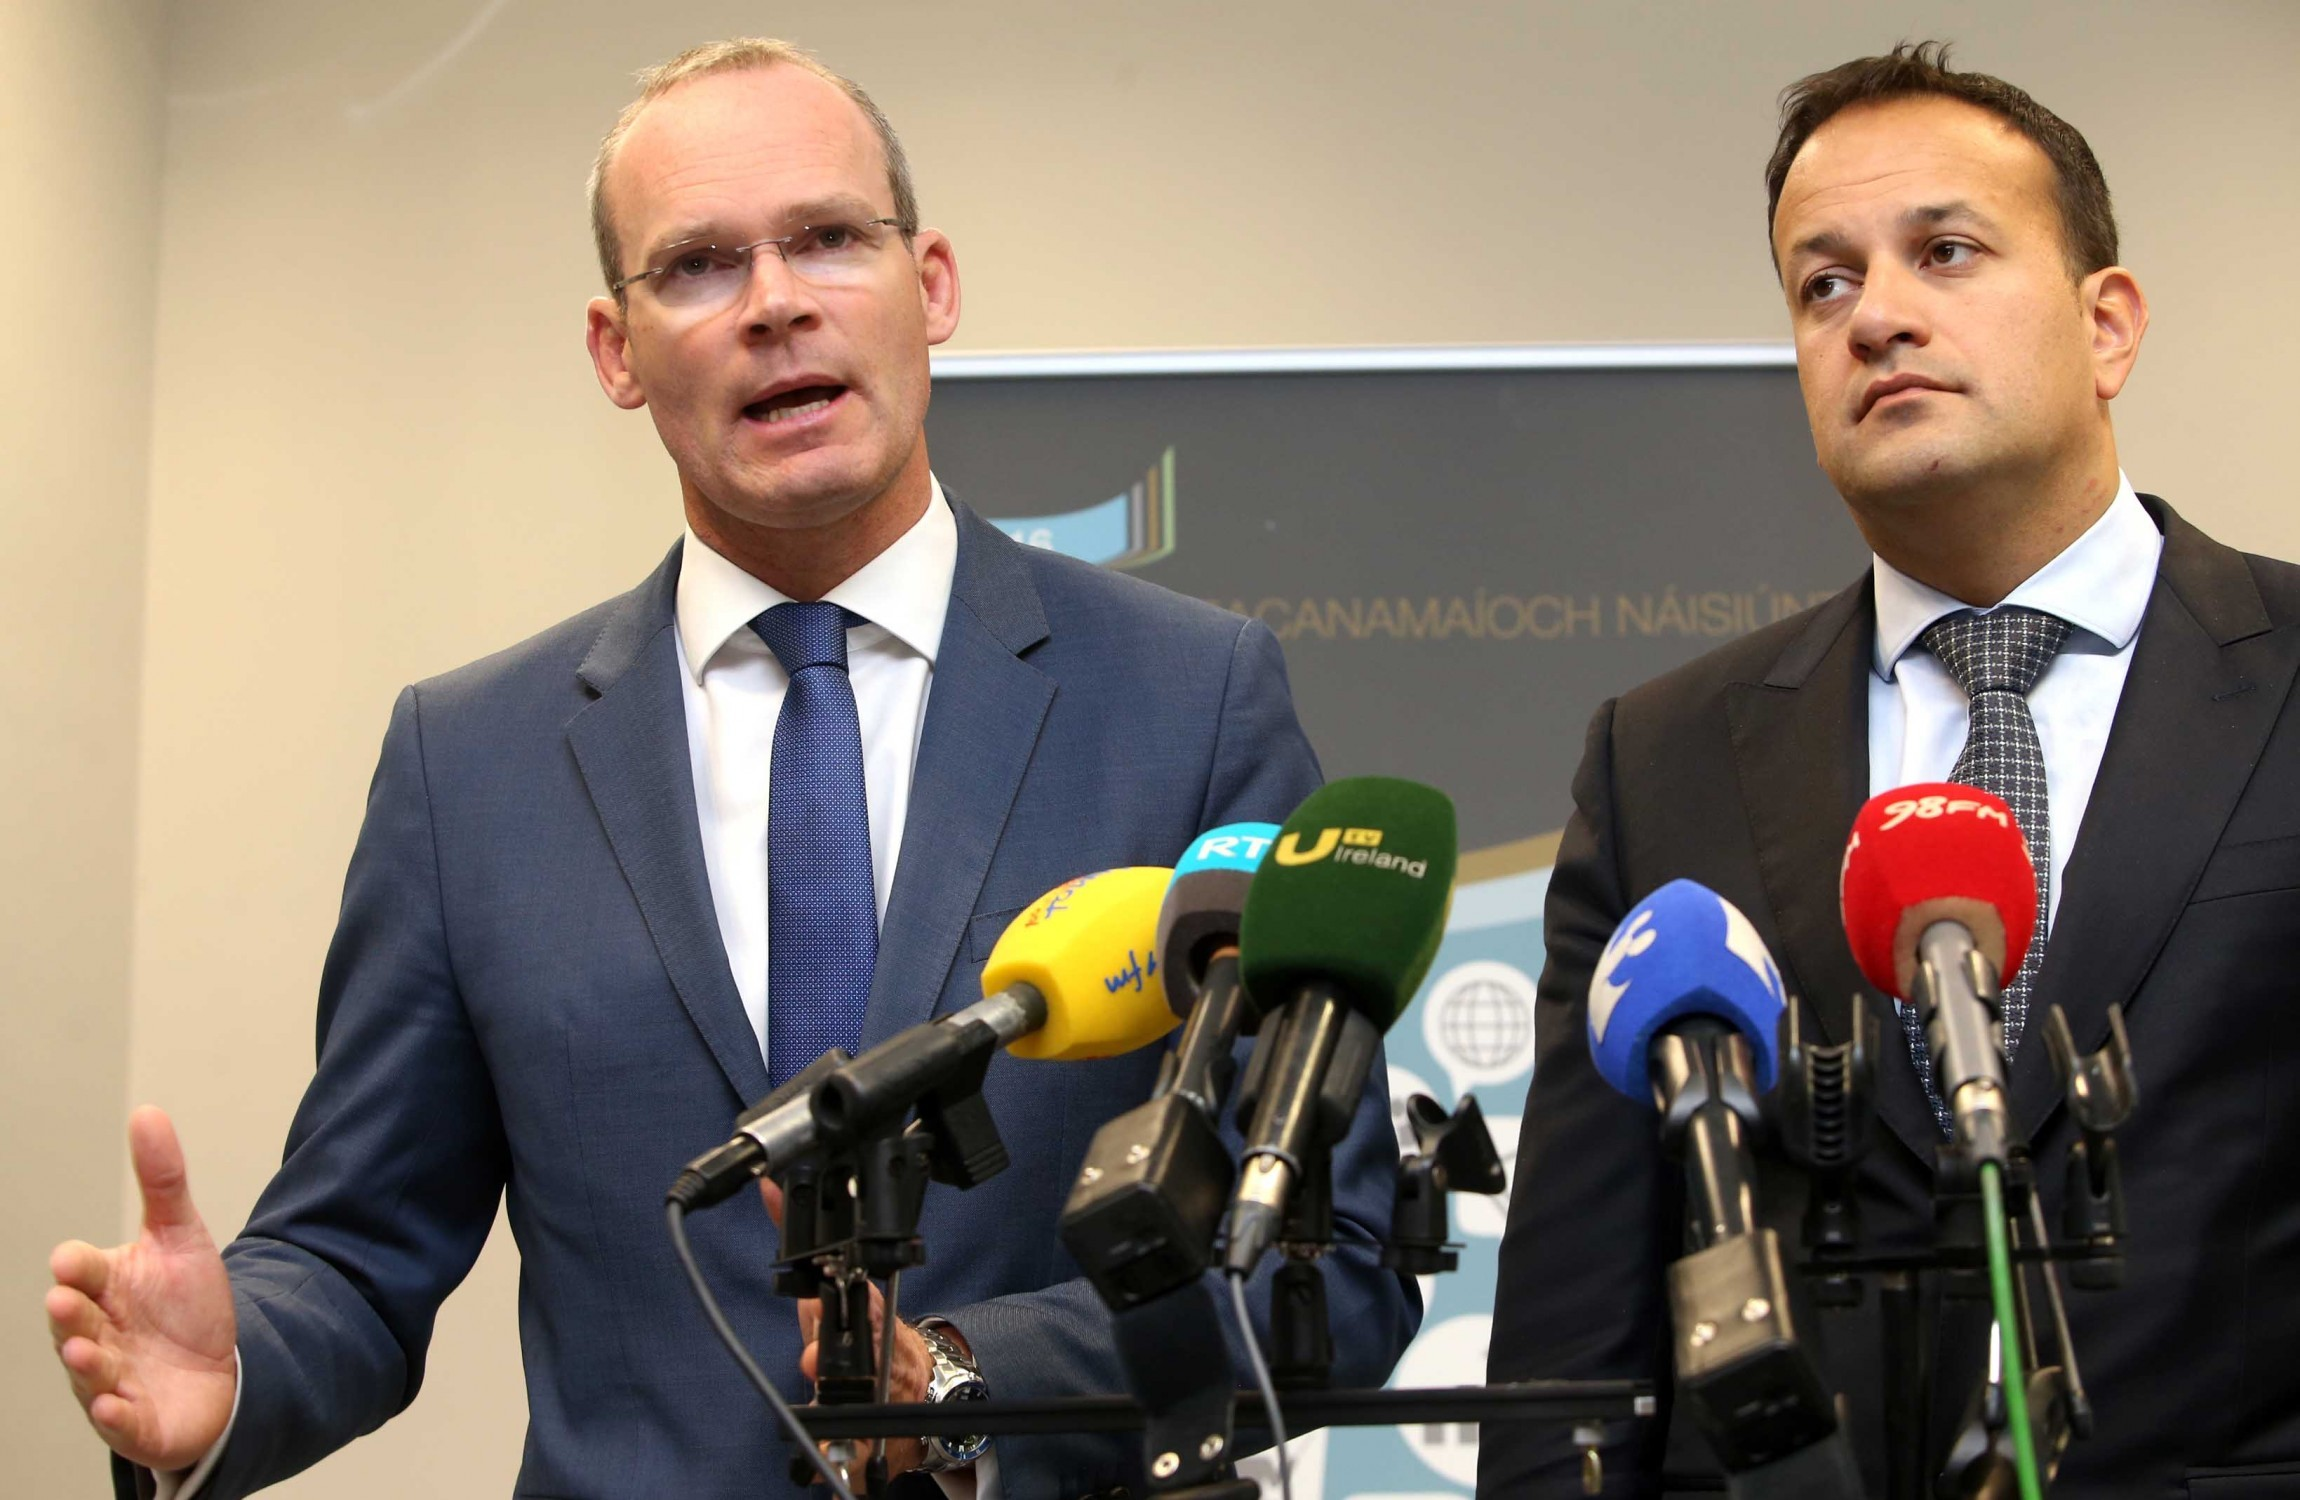 Leo Varadkar picked to become Ireland's new PM: party